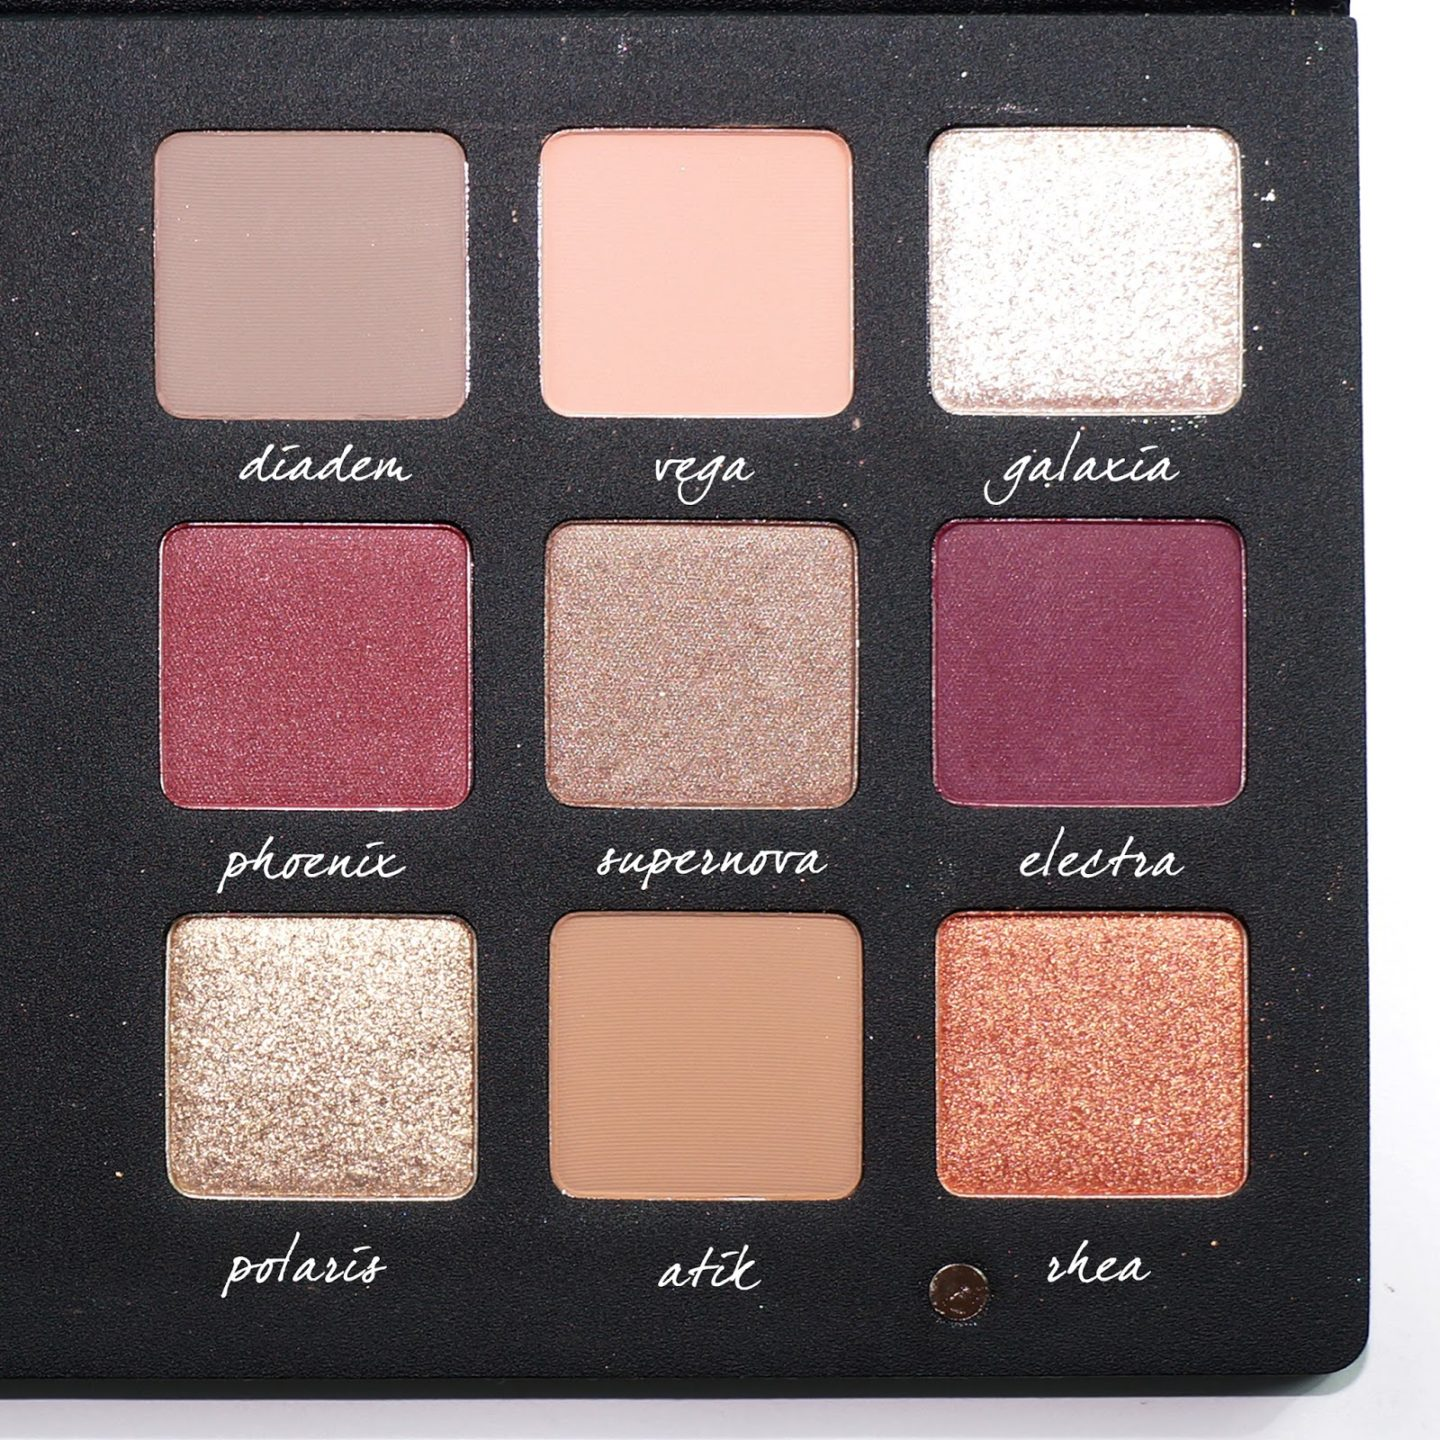 Natasha Denona Star Palette - The Beauty Look Book